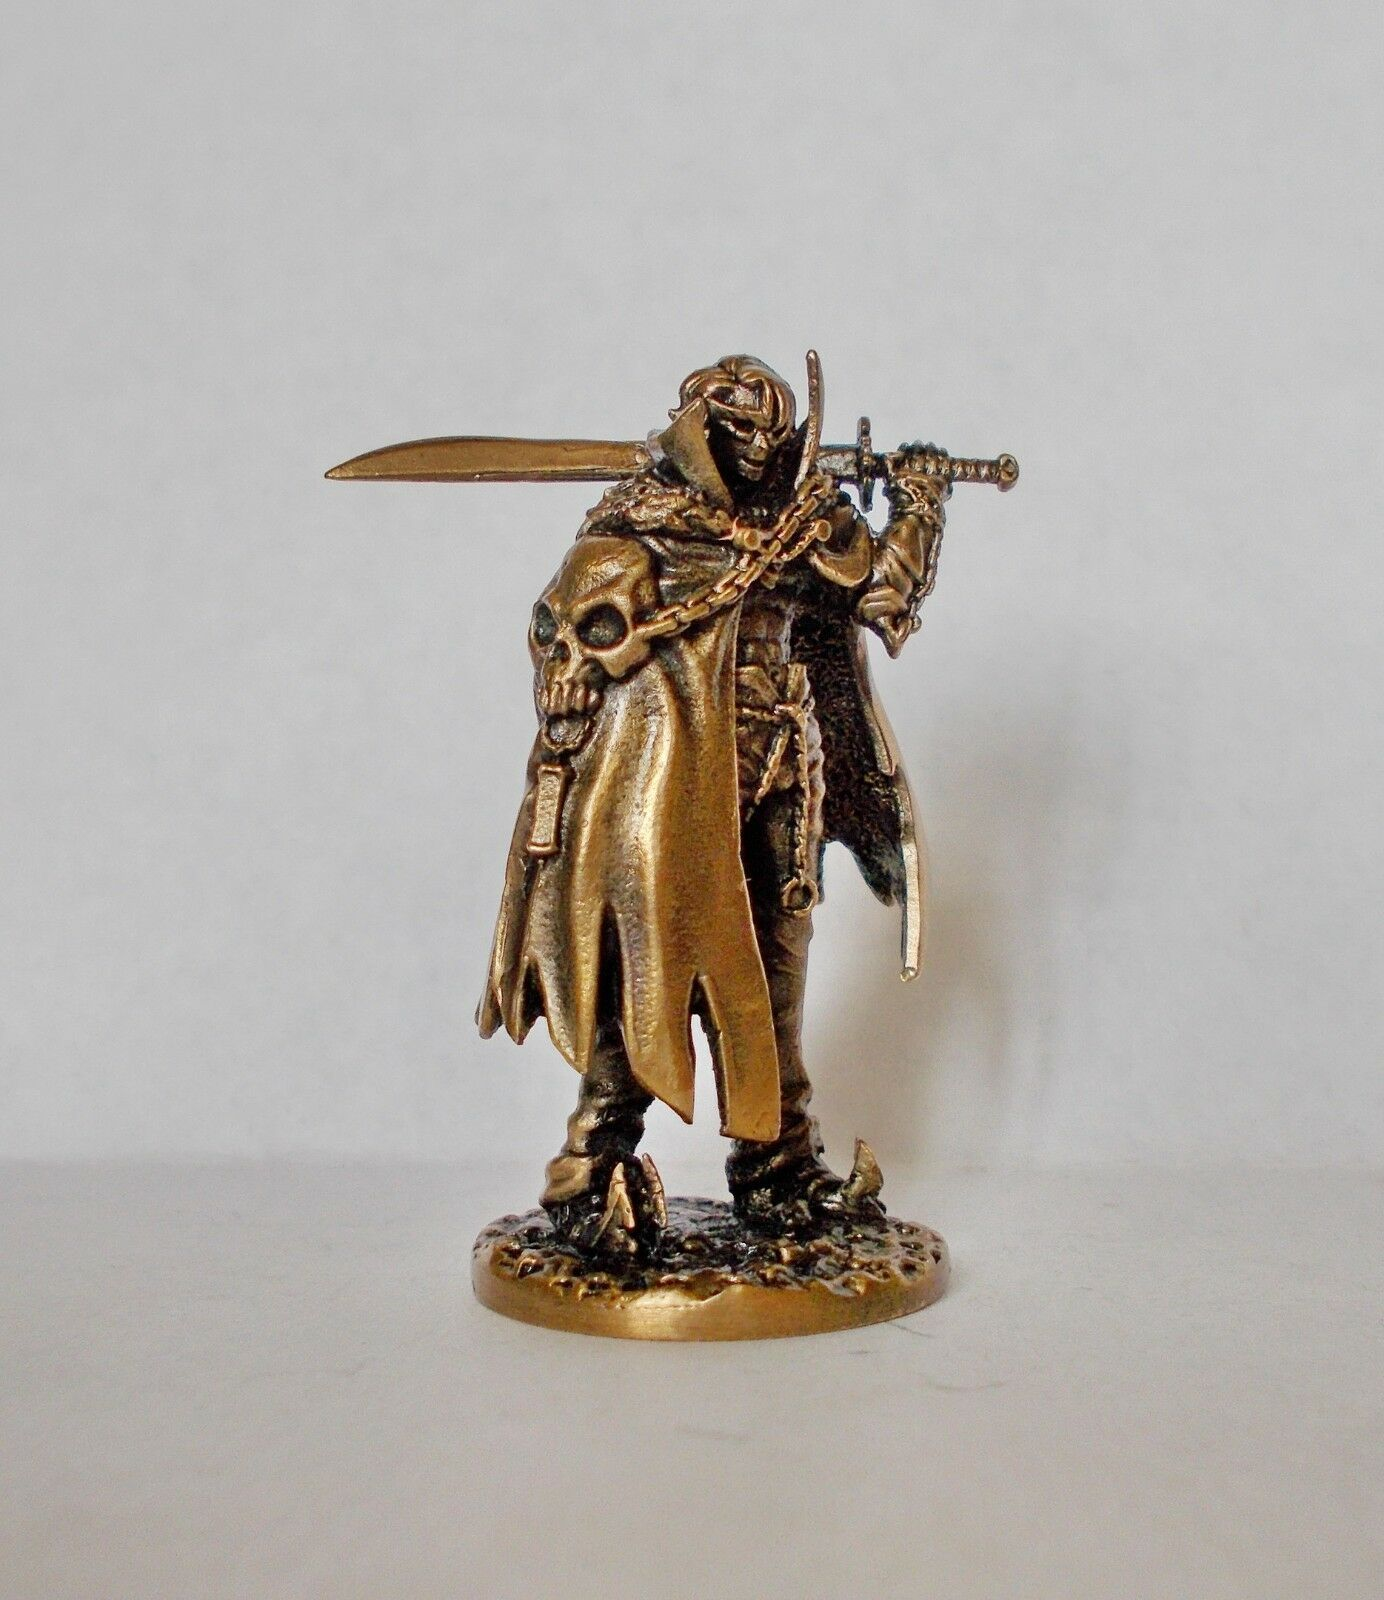 Kingdom Death Messenger of the Spiral Path BRONZE (metal) conversion  DK19